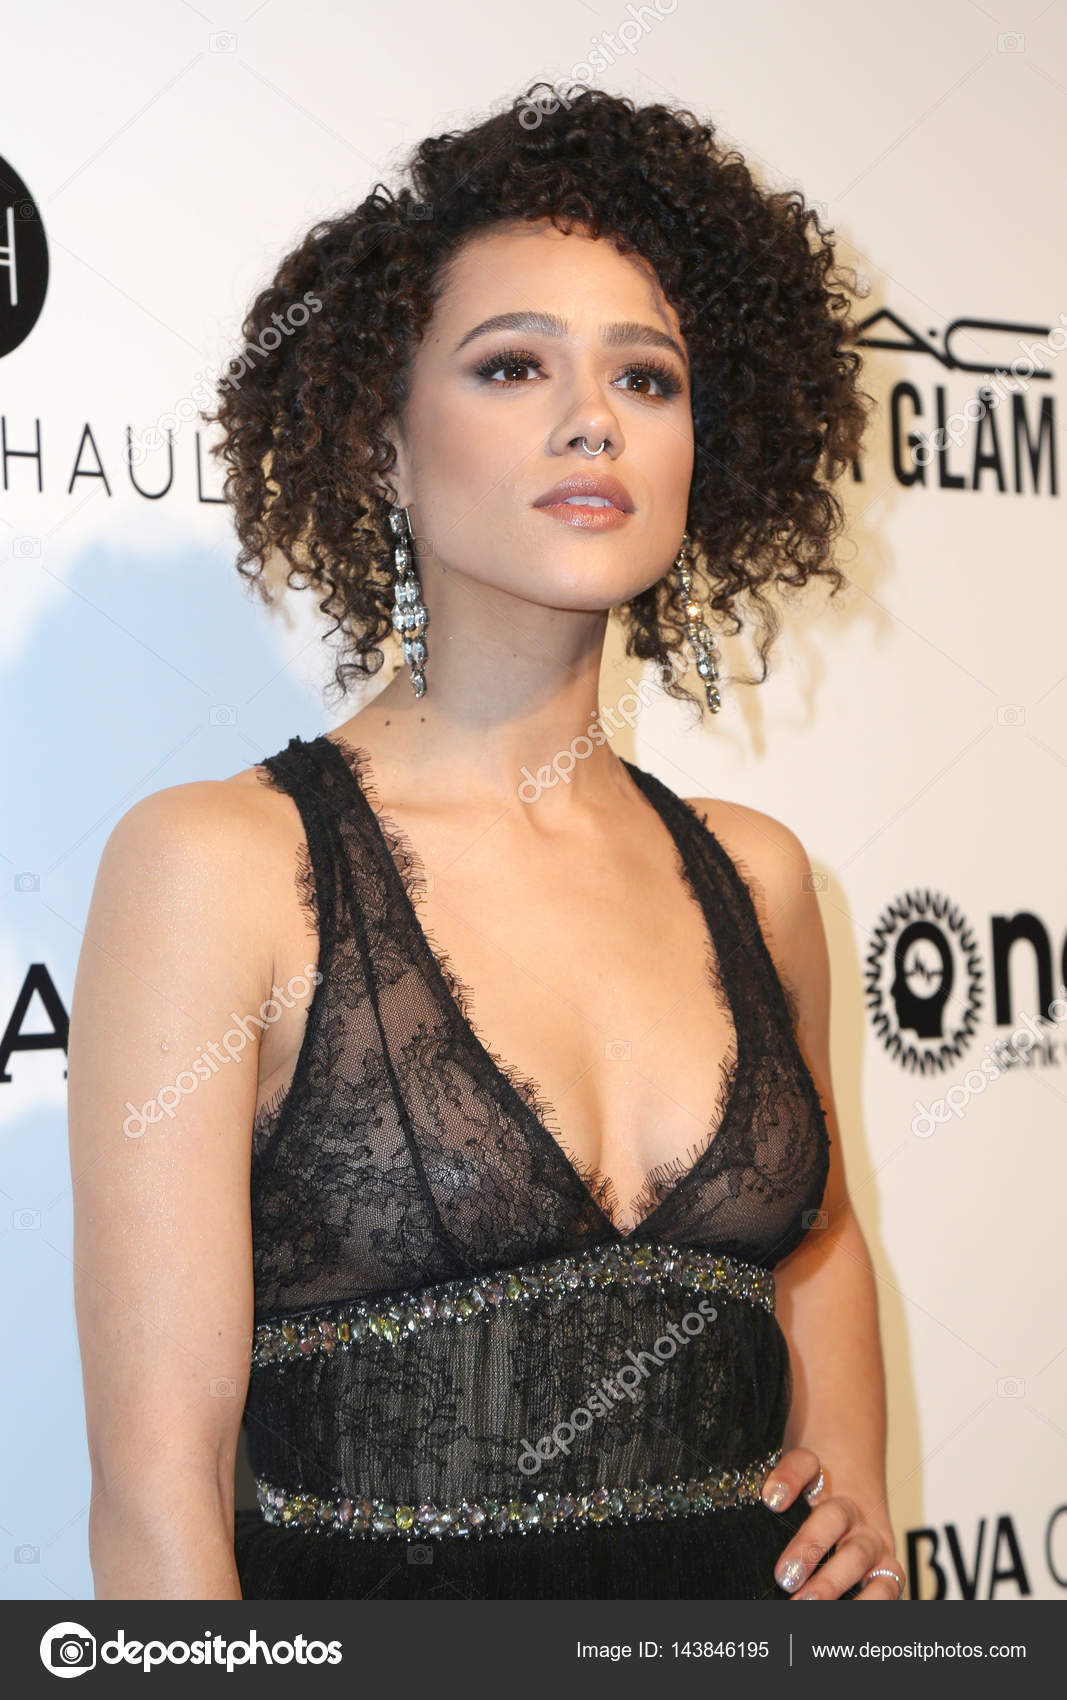 actress nathalie emmanuel – stock editorial photo © jean_nelson